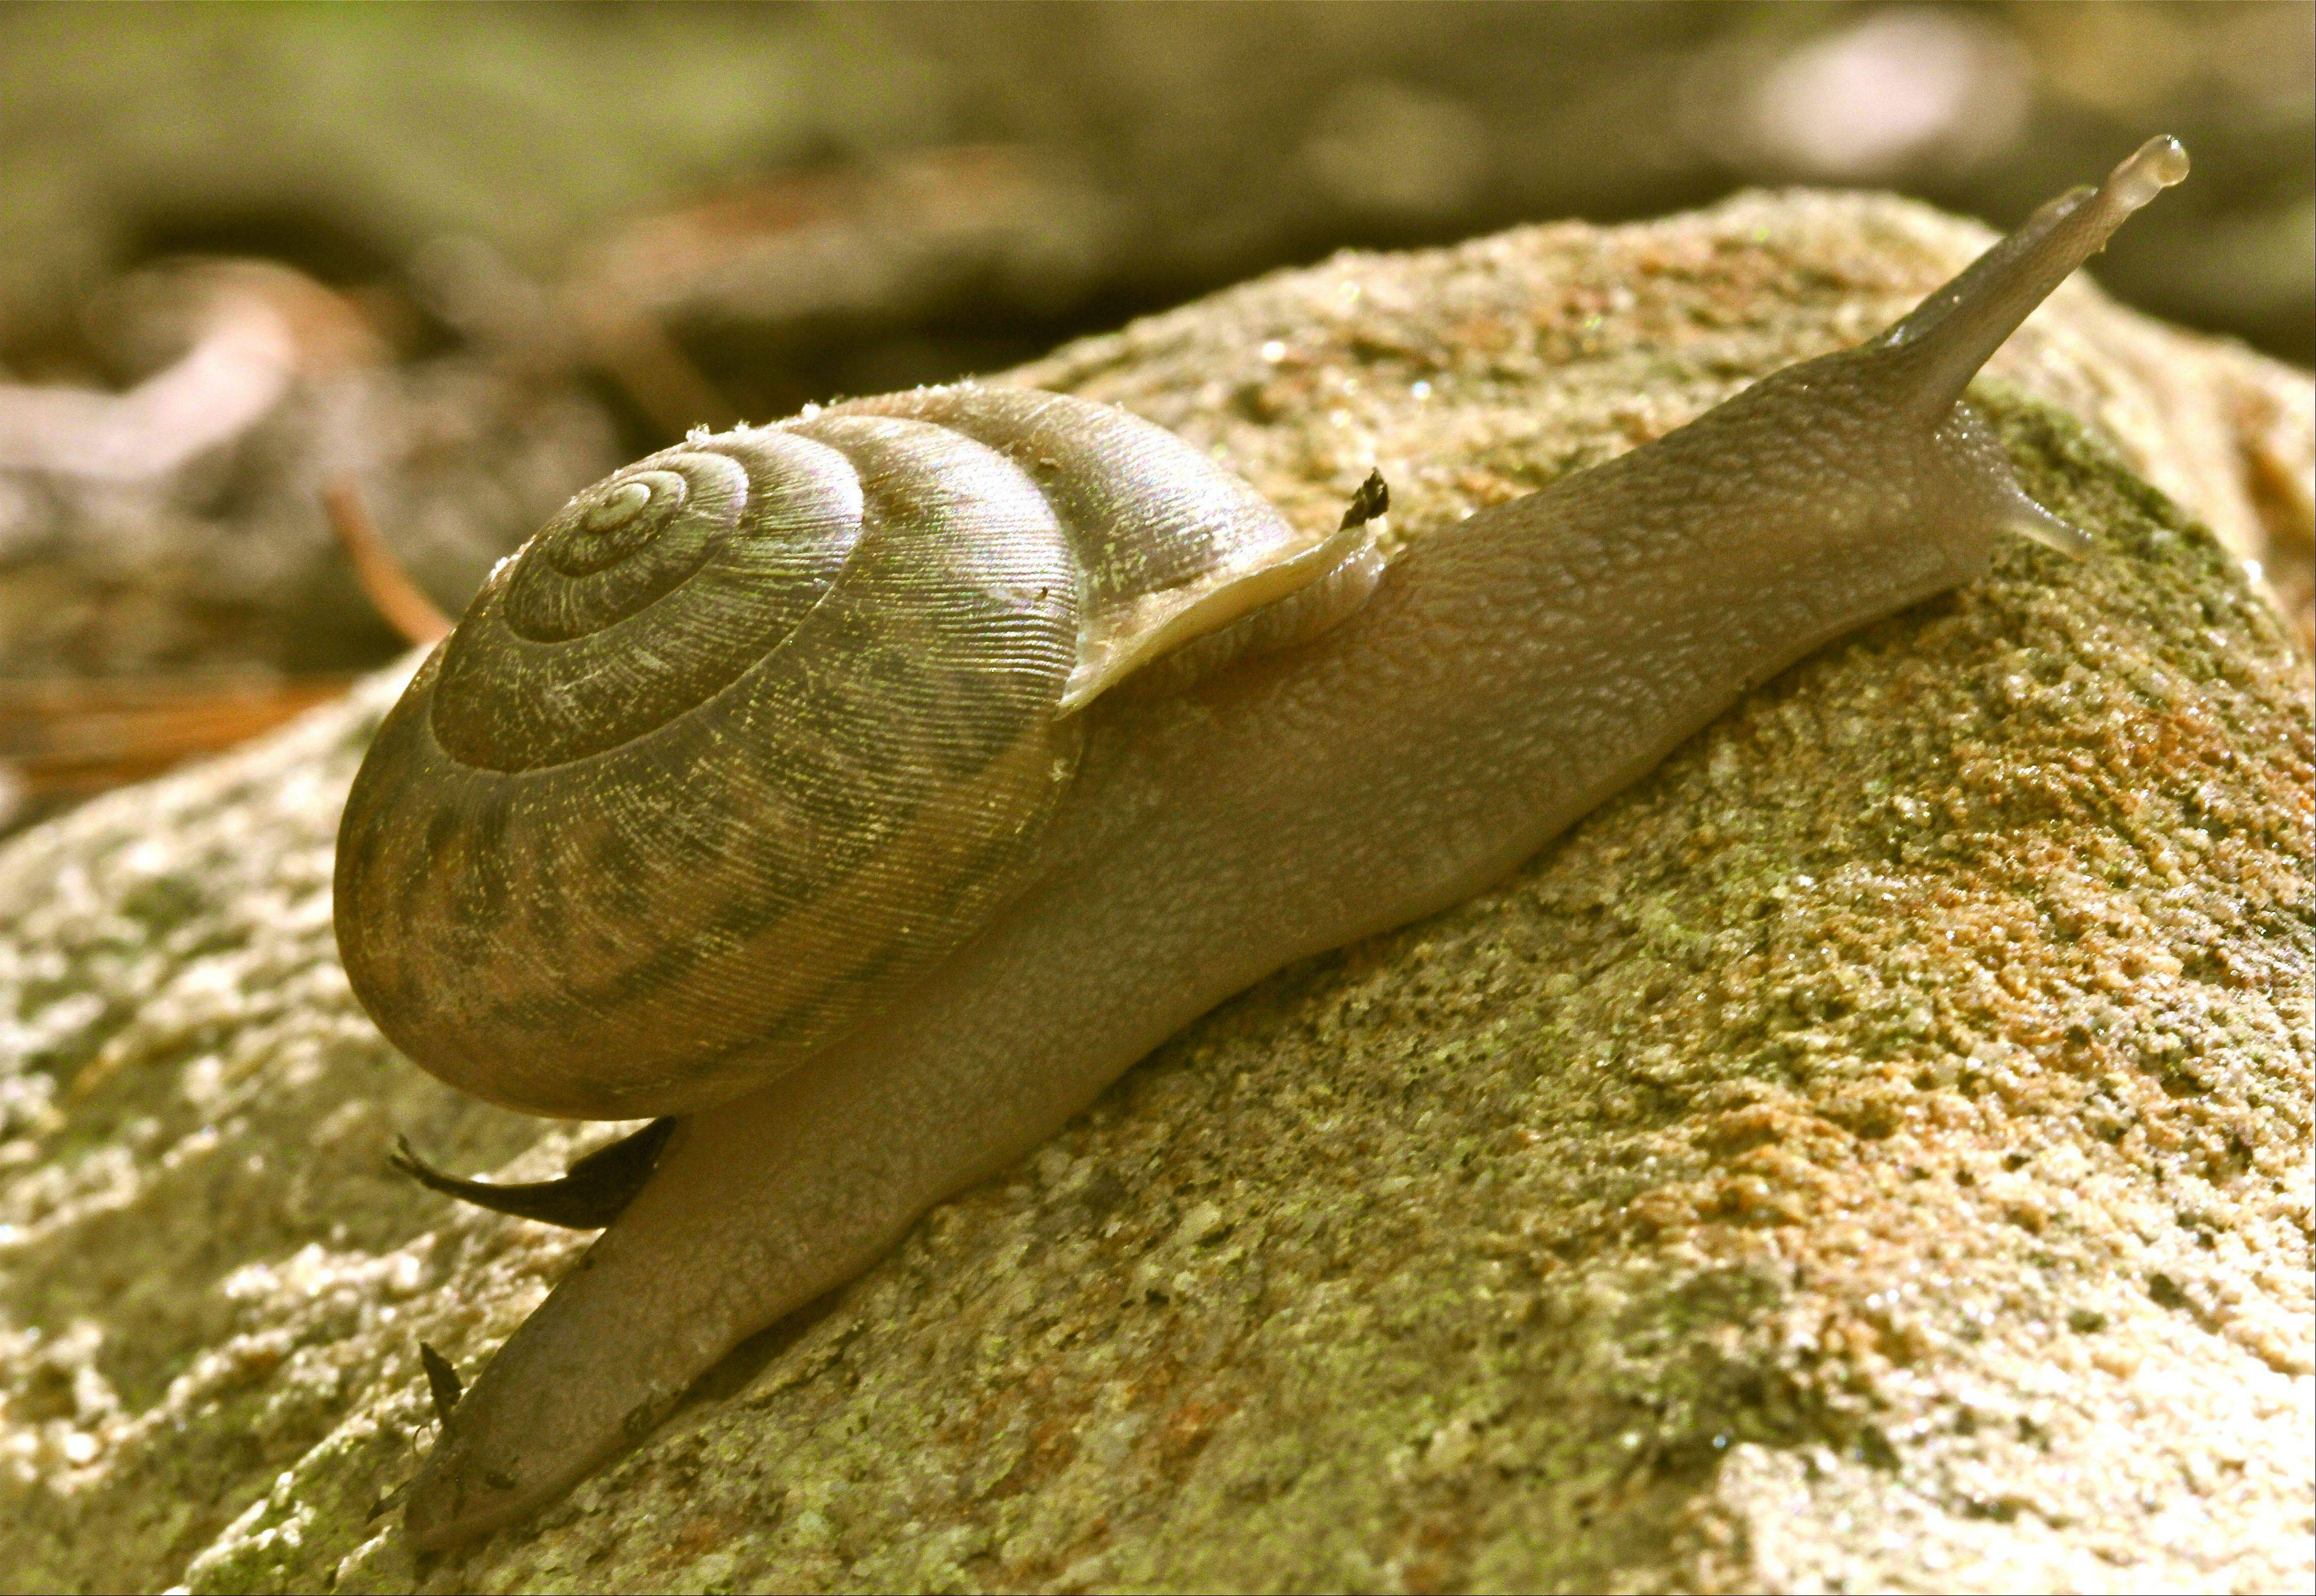 Snails are more adapted to dry climates than slugs, because of their ability to find relief from the heat by withdrawing into their shells. Making your yard less hospitable to destructive snails and slugs is generally more effective than using chemicals.